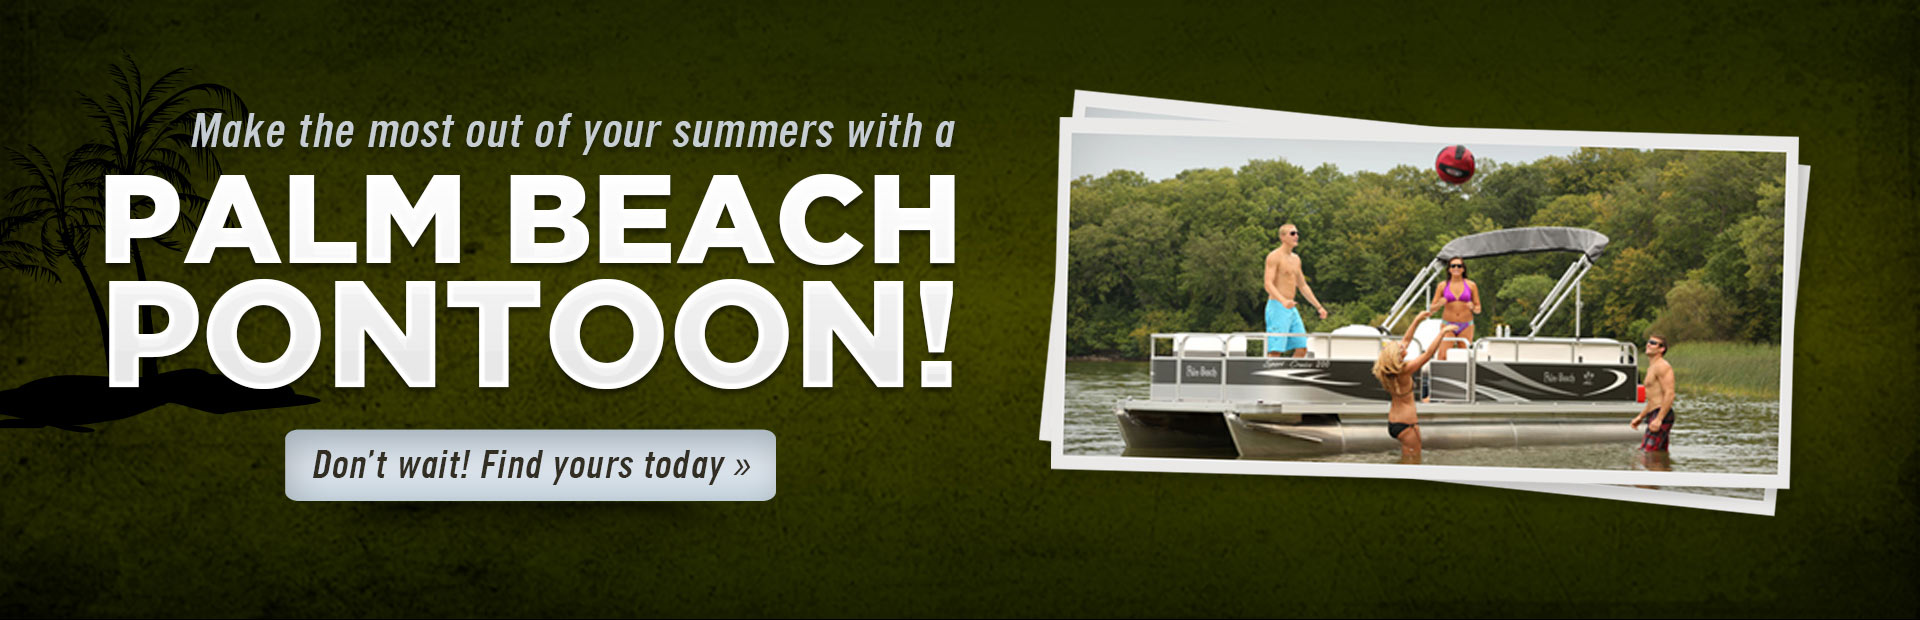 Click here to browse our selection of Palm Beach pontoons and make the most out of your summer!